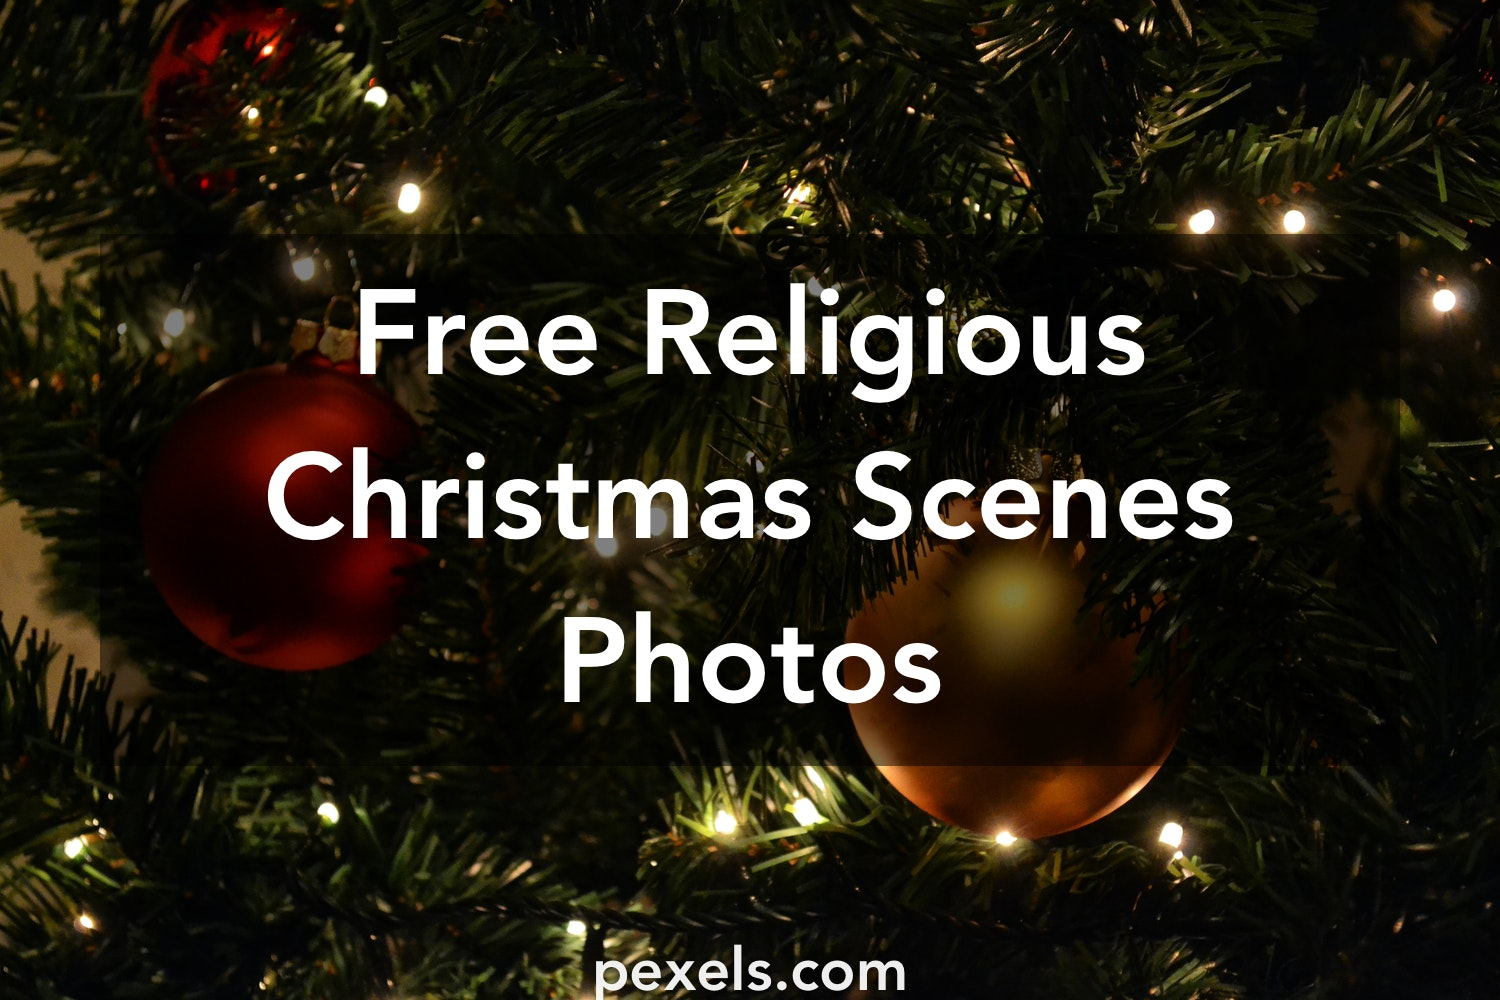 1000 great religious christmas scenes photos pexels free stock photos